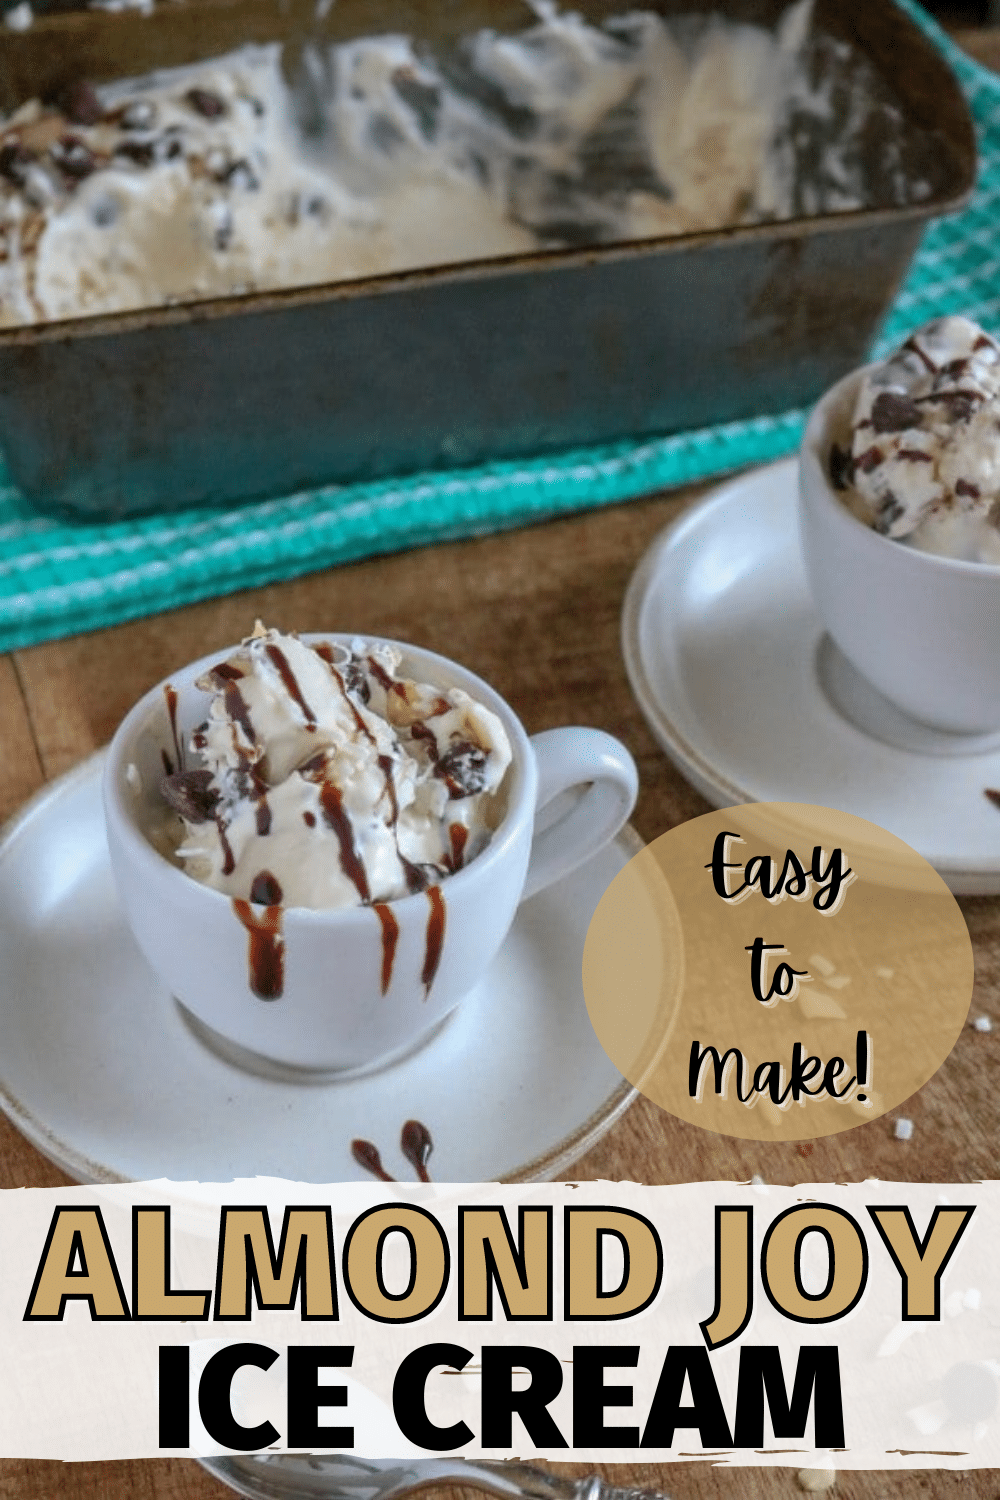 This EasyHomemade Almond Joy Ice Creamrecipe is a delicious combination of two desserts. It's perfect for anyone who loves Almond Joy and ice cream! #almondjoy #icecream #dessert via @wondermomwannab